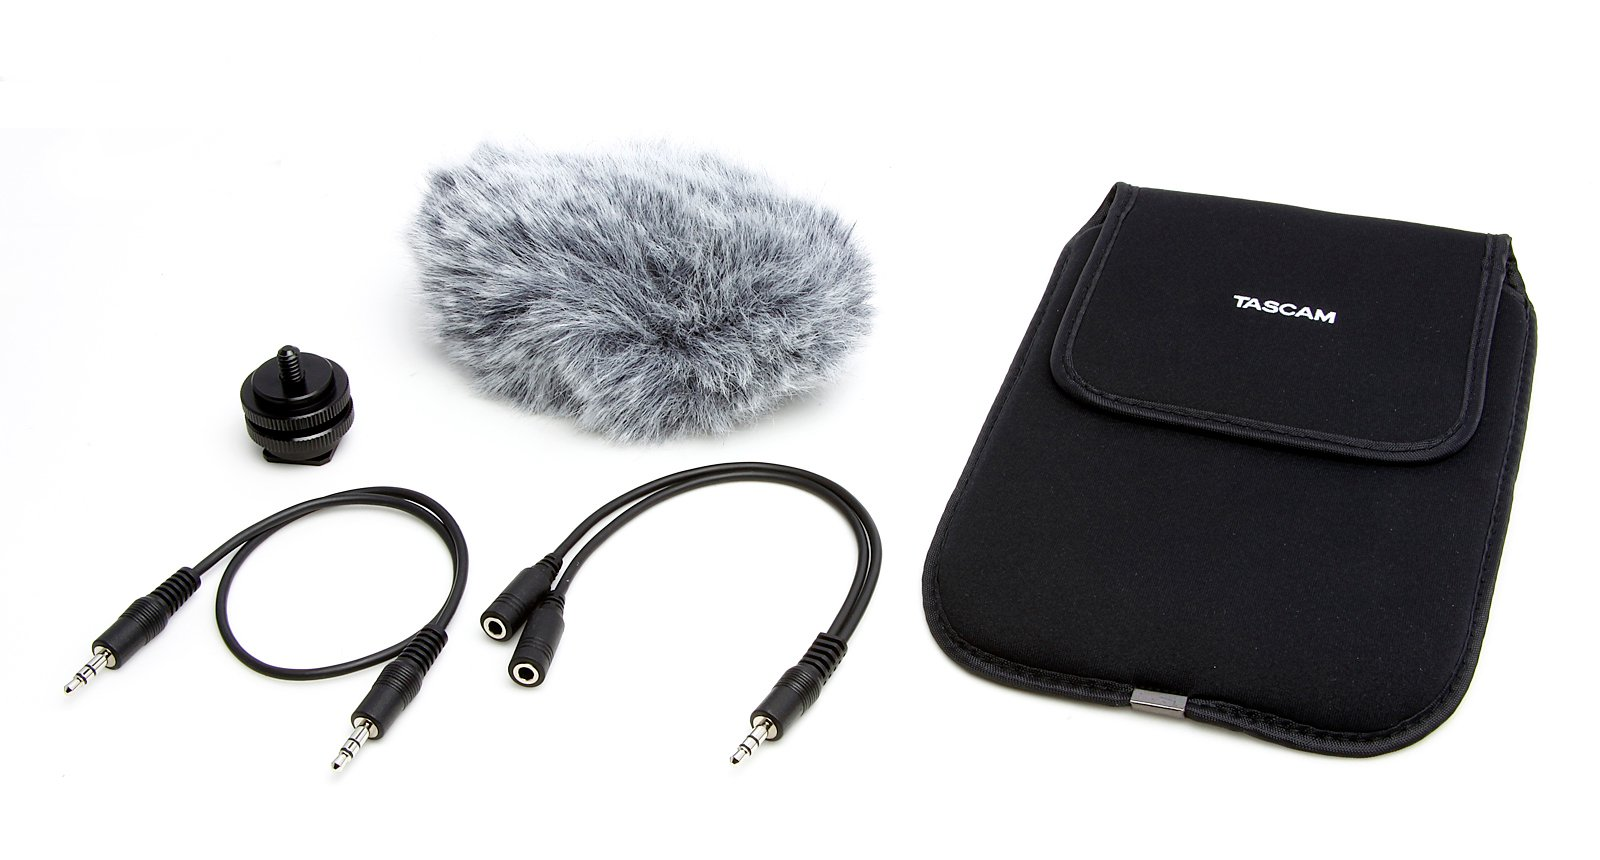 Accessory Package for DR-Series Handheld Recorders